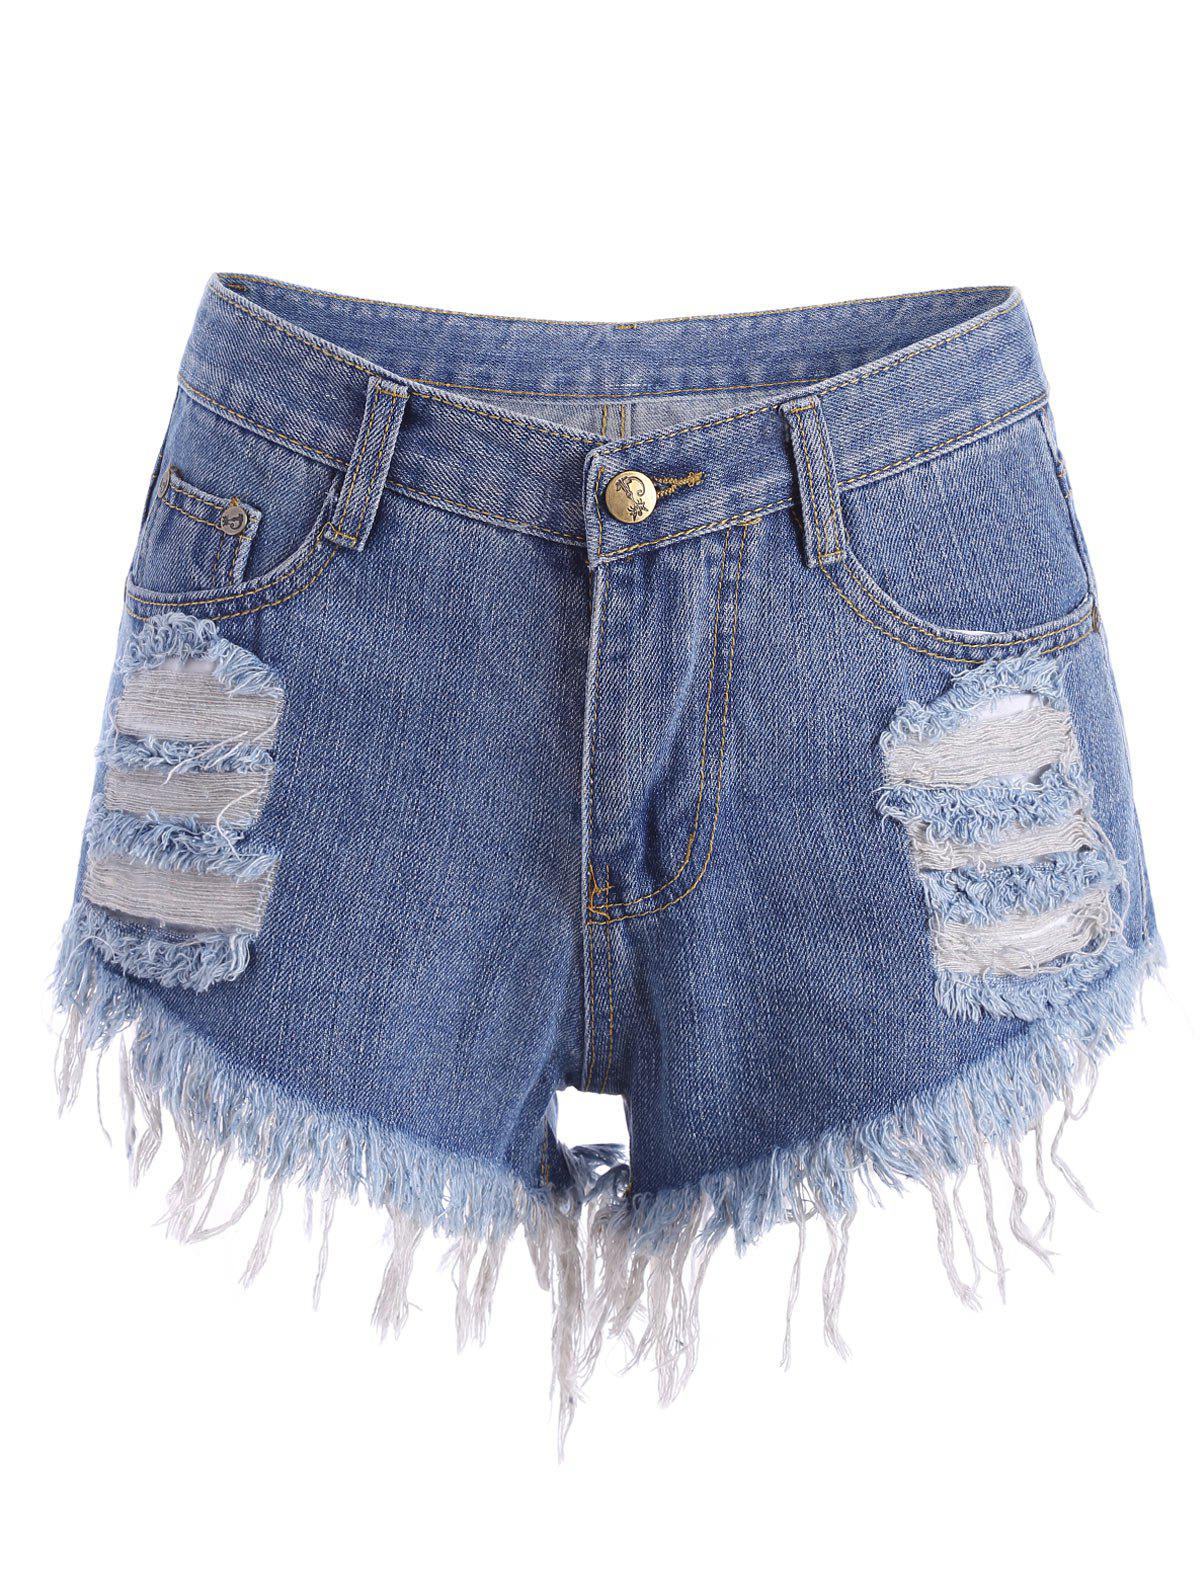 Ripped Denim Cutoffs Shorts - BLUE S